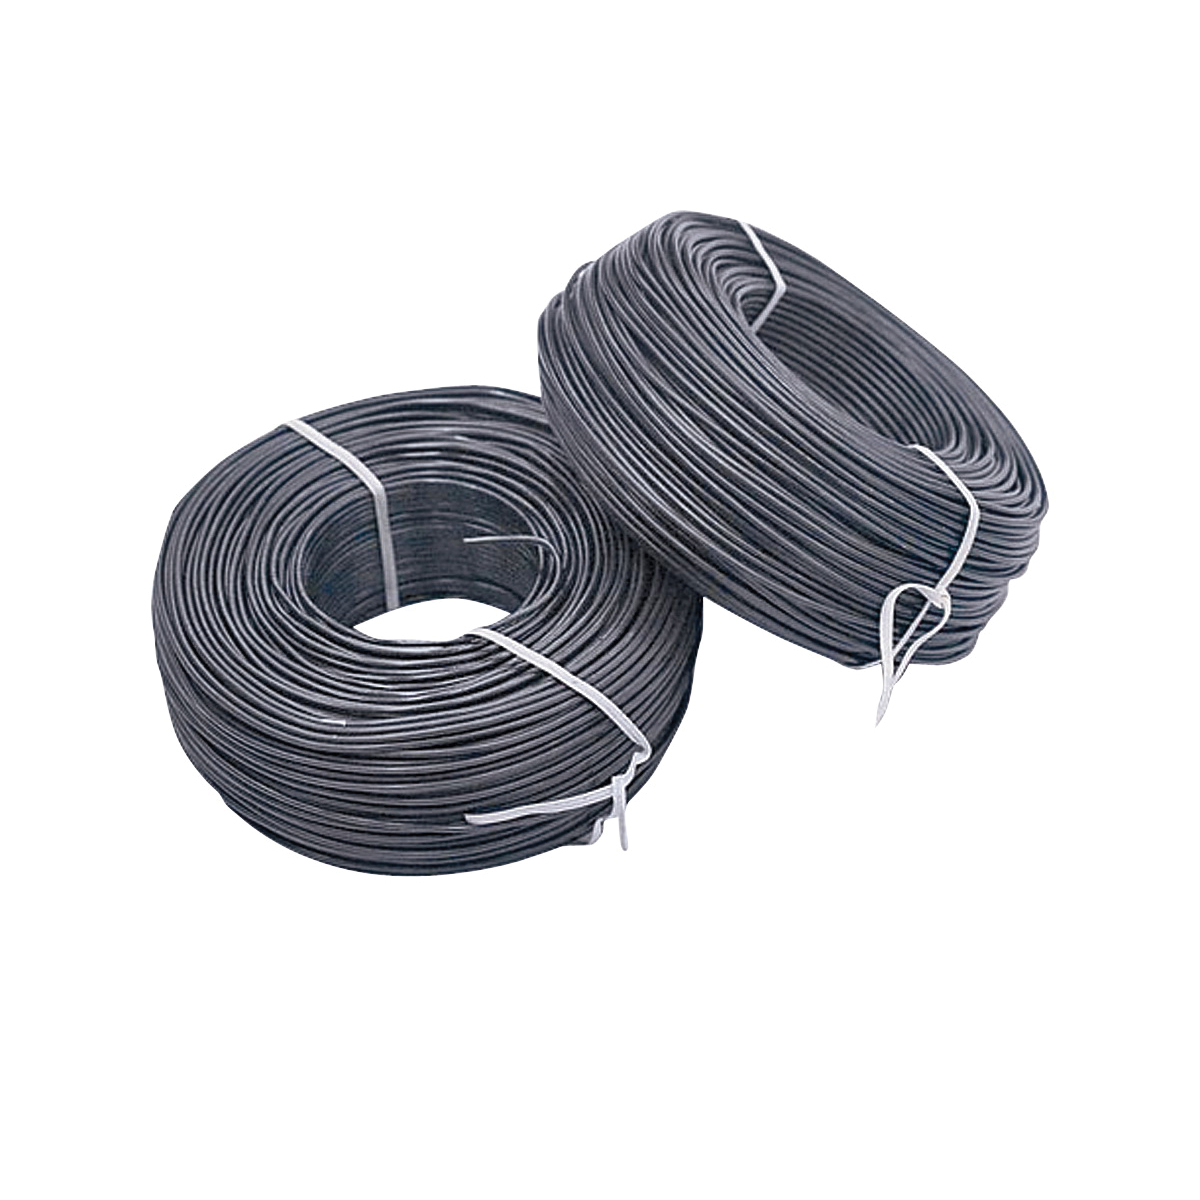 Picture of DEACERO 5689/71572 Tie Wire, 16.5 ga Wire, 330 ft L, Steel, Annealed